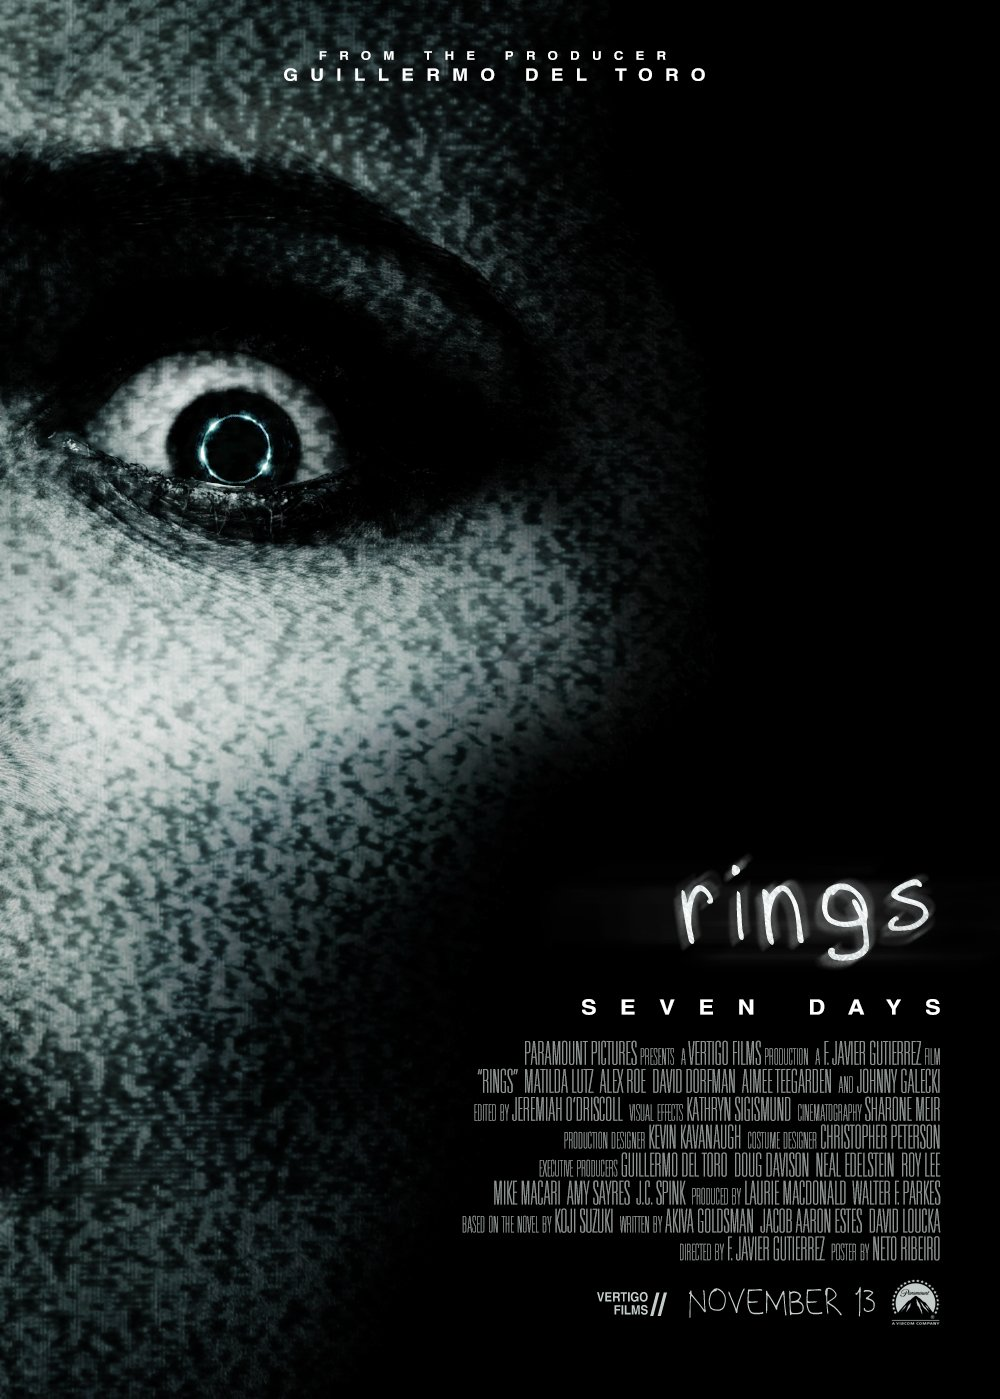 rings__2015____first_poster_by_netoribeiro89-d96wb54